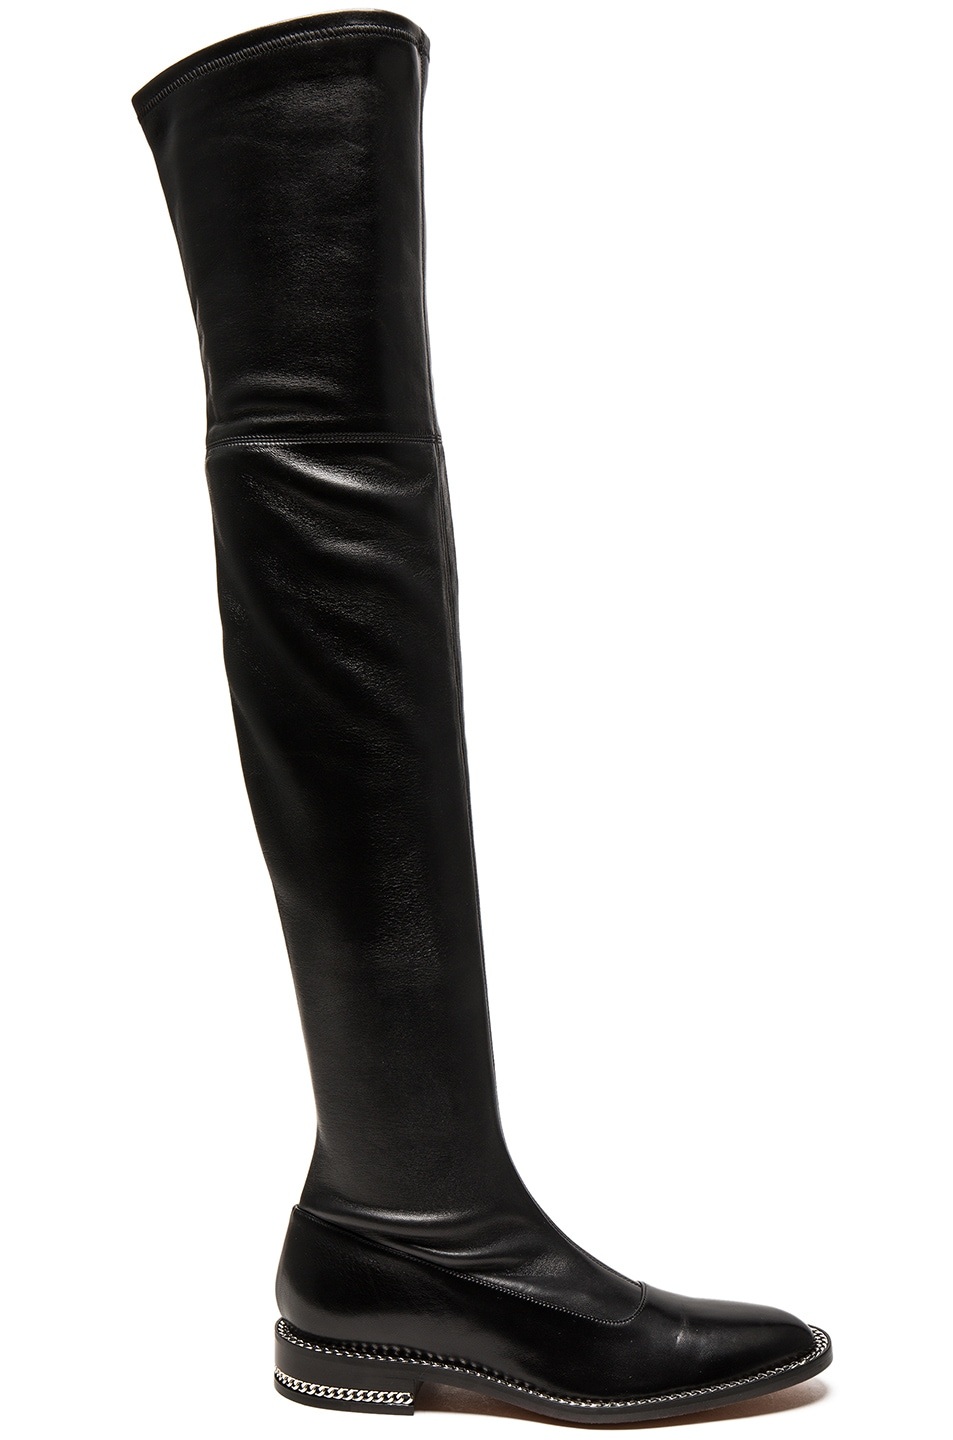 givenchy stretch leather the knee boots in black fwrd